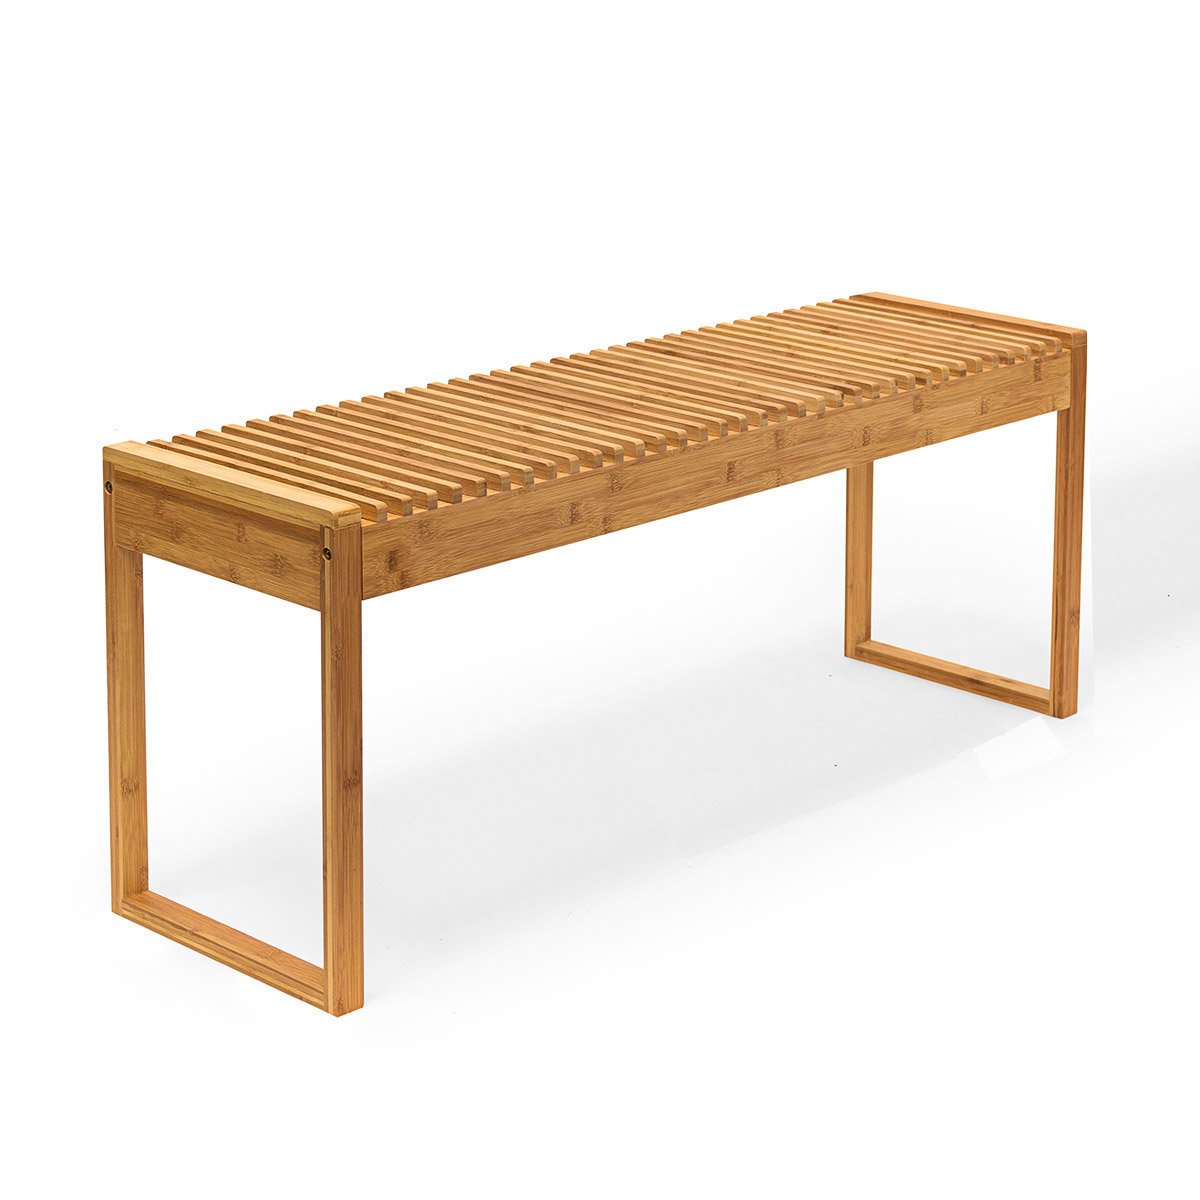 New Ridge Home Goods HX-71451 Indoor/Outdoor Solid Bamboo Bench, Natural